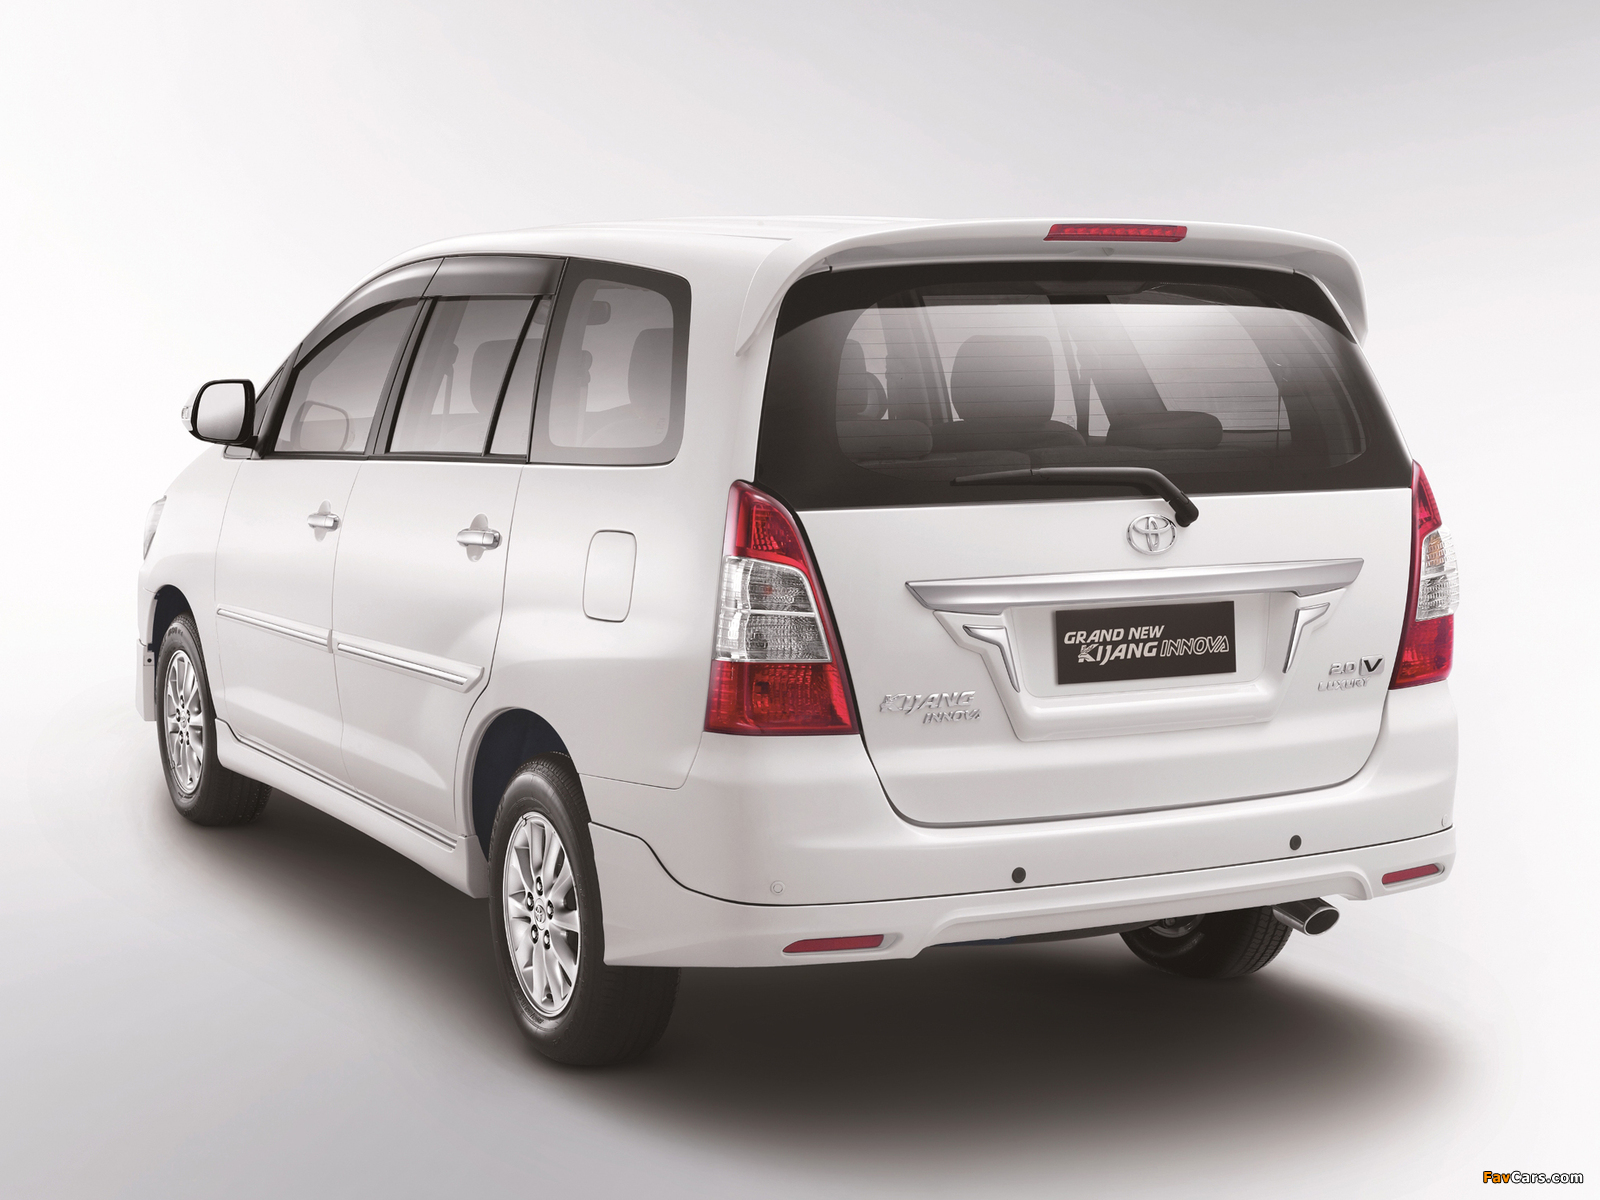 Toyota Grand New Kijang Innova 2011 Pictures 1600x1200